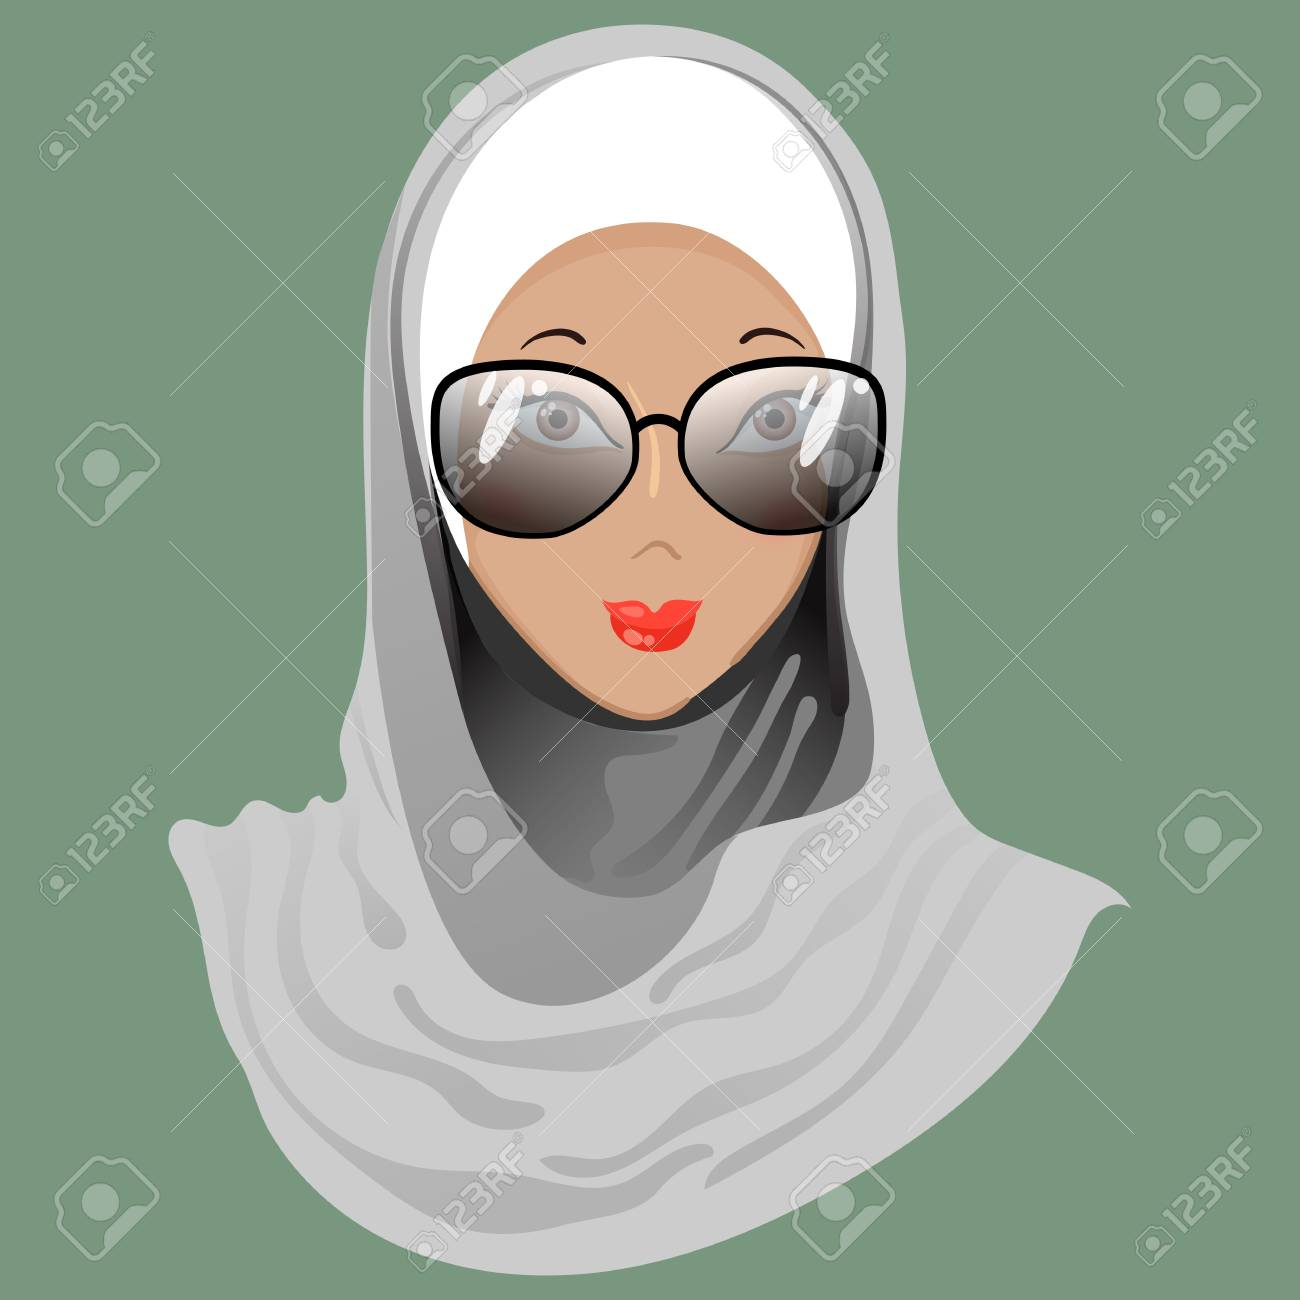 Emoticon calm muslim girl with glasses for used for web emoticon calm muslim girl with glasses for used for web wallpaper printing altavistaventures Image collections